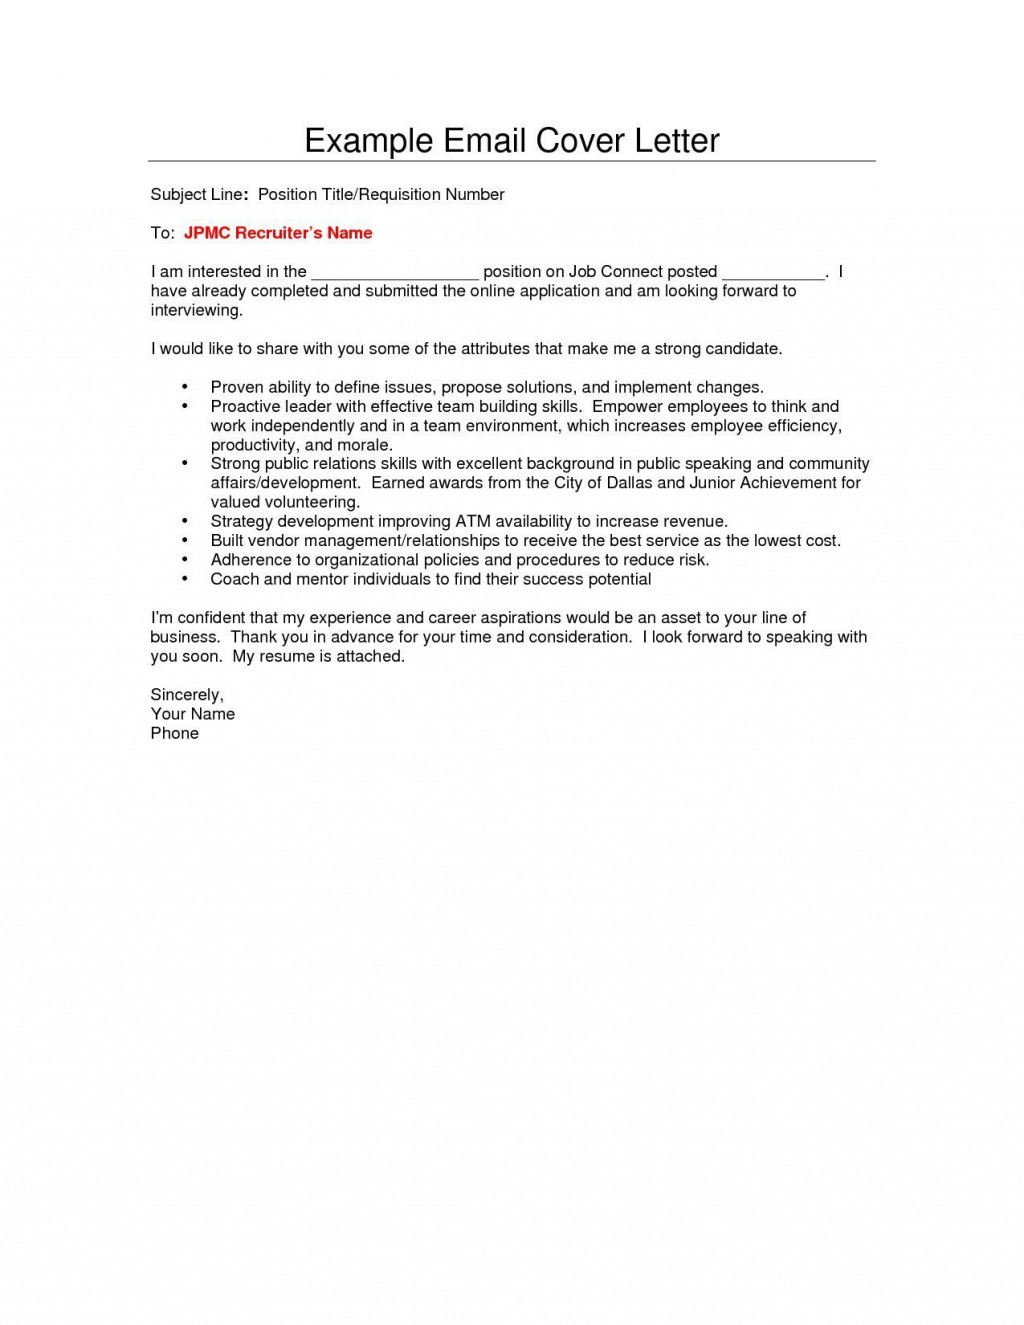 007 Impressive Email Cover Letter Example For Resume Picture  Sample Through AttachedLarge